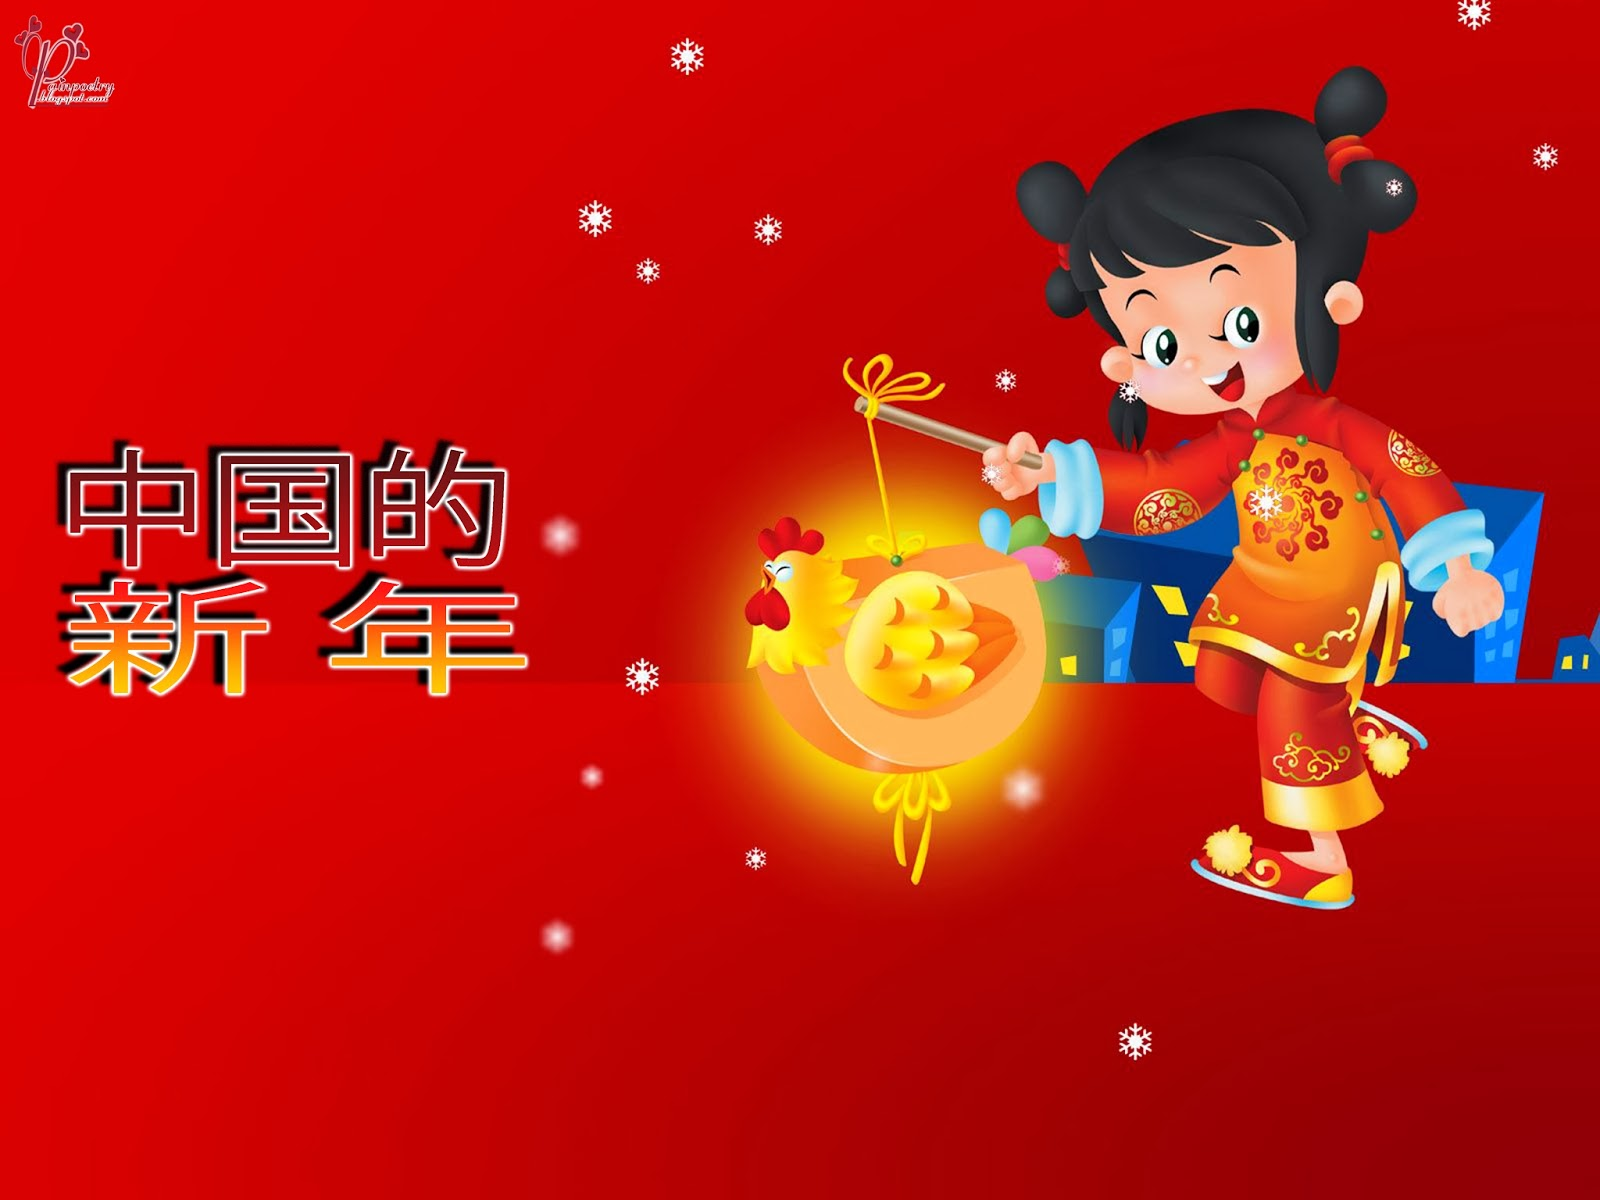 Chinese-New-year-Desktop-Image-HD